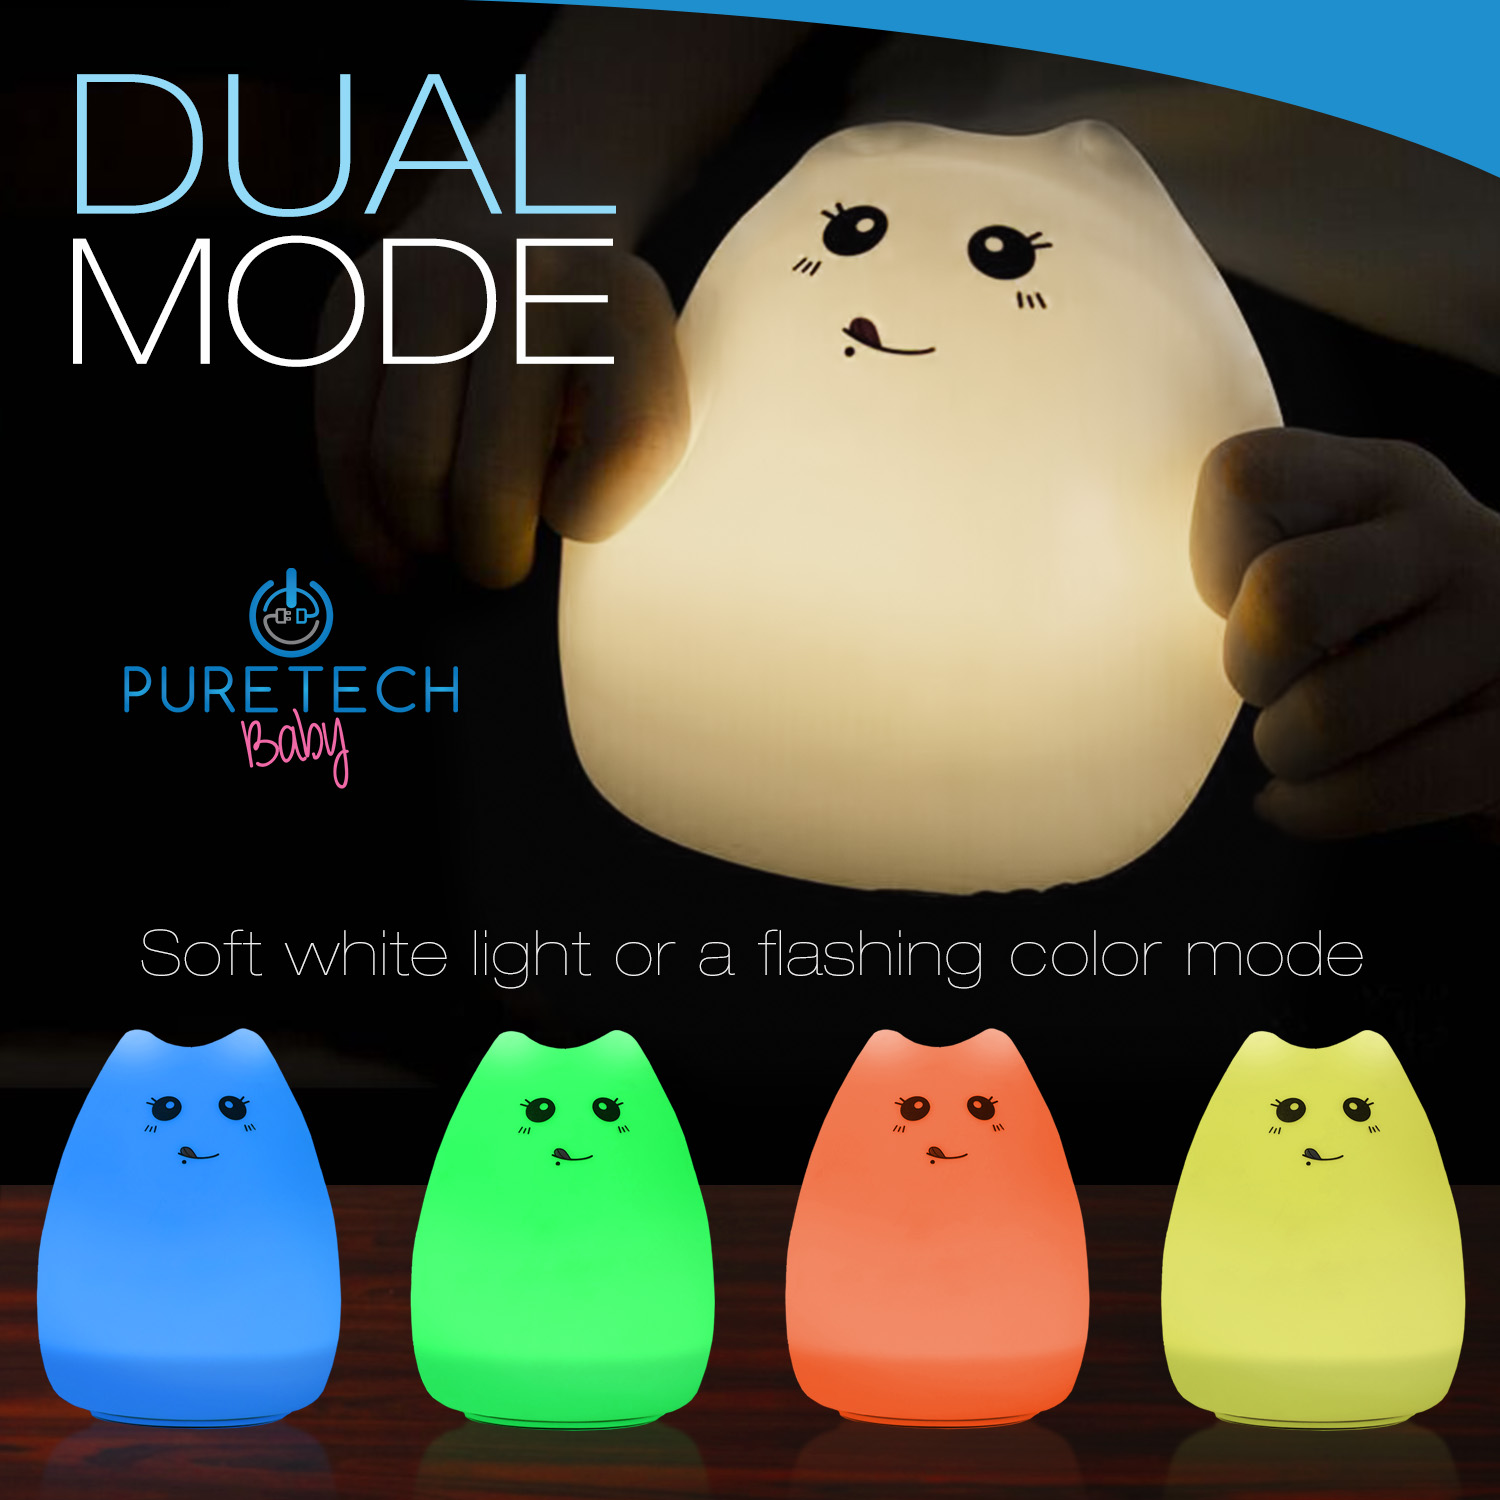 DUAL MODE — Soft white light or a flashing color m